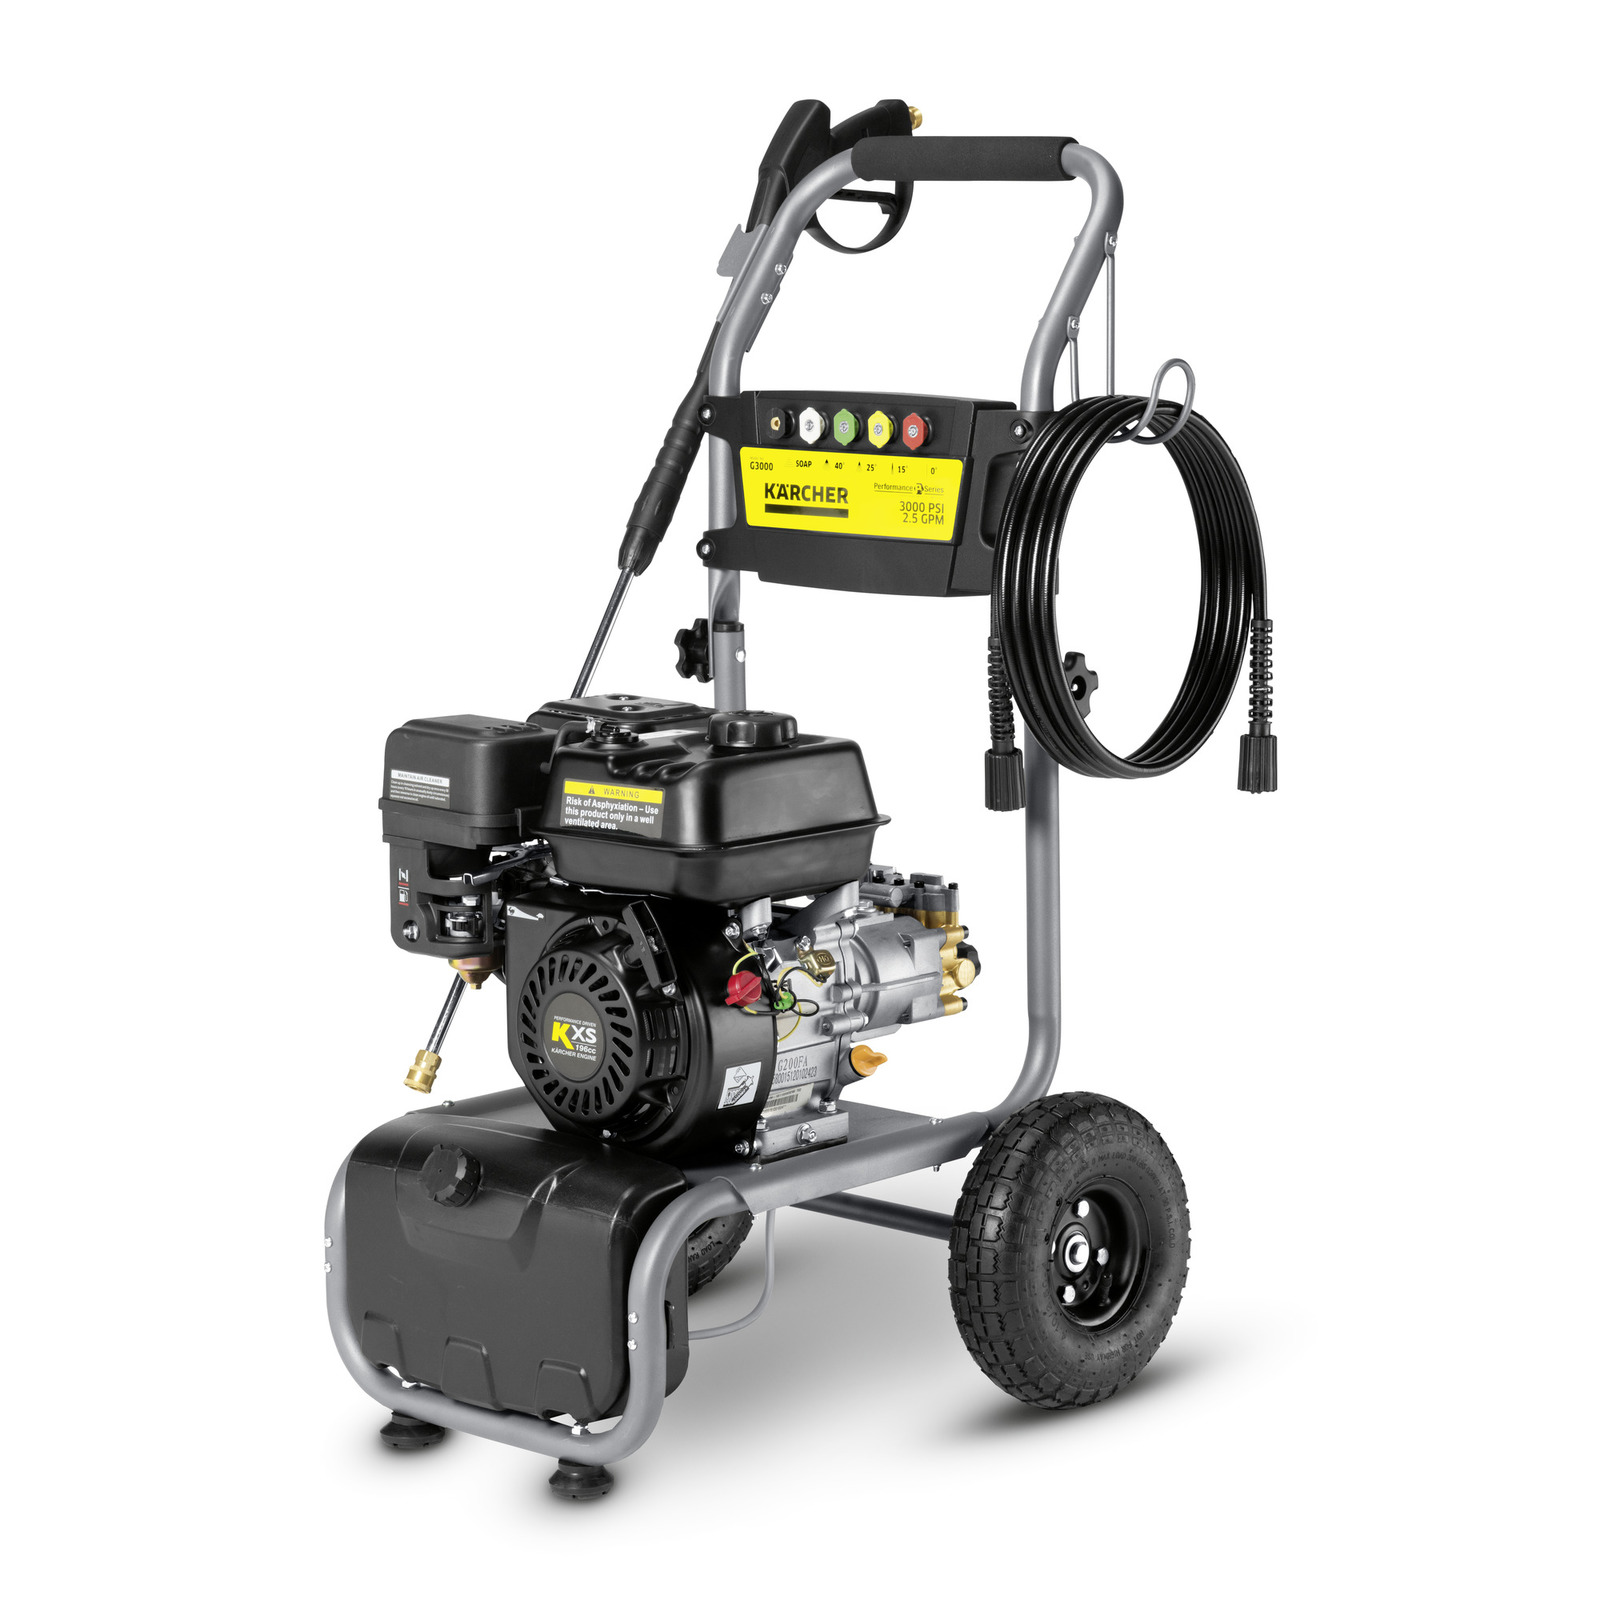 G 3000 Gas Powered Pressure Washer 3000 Psi 1 107 280 0